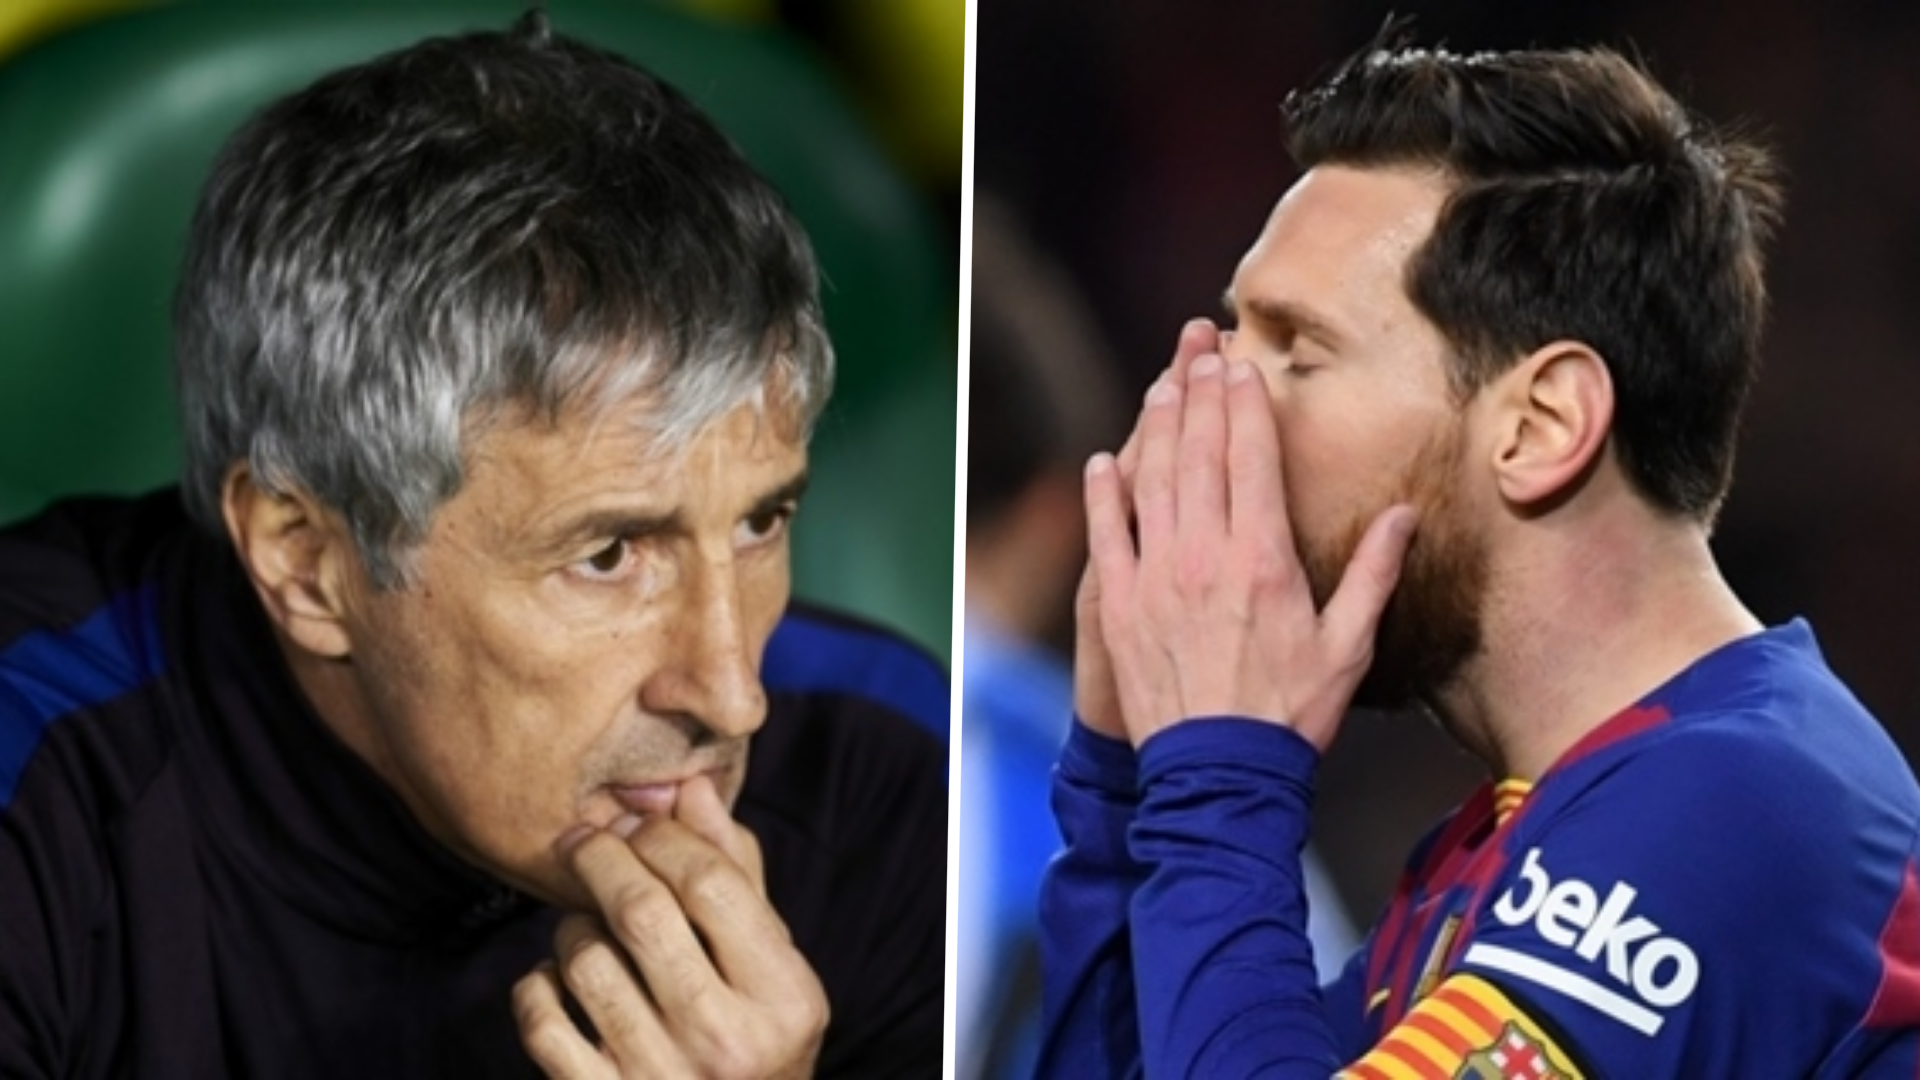 'I don't recall any problems that are worth mentioning' - Setien plays down Barcelona & Messi rifts amid sack reports